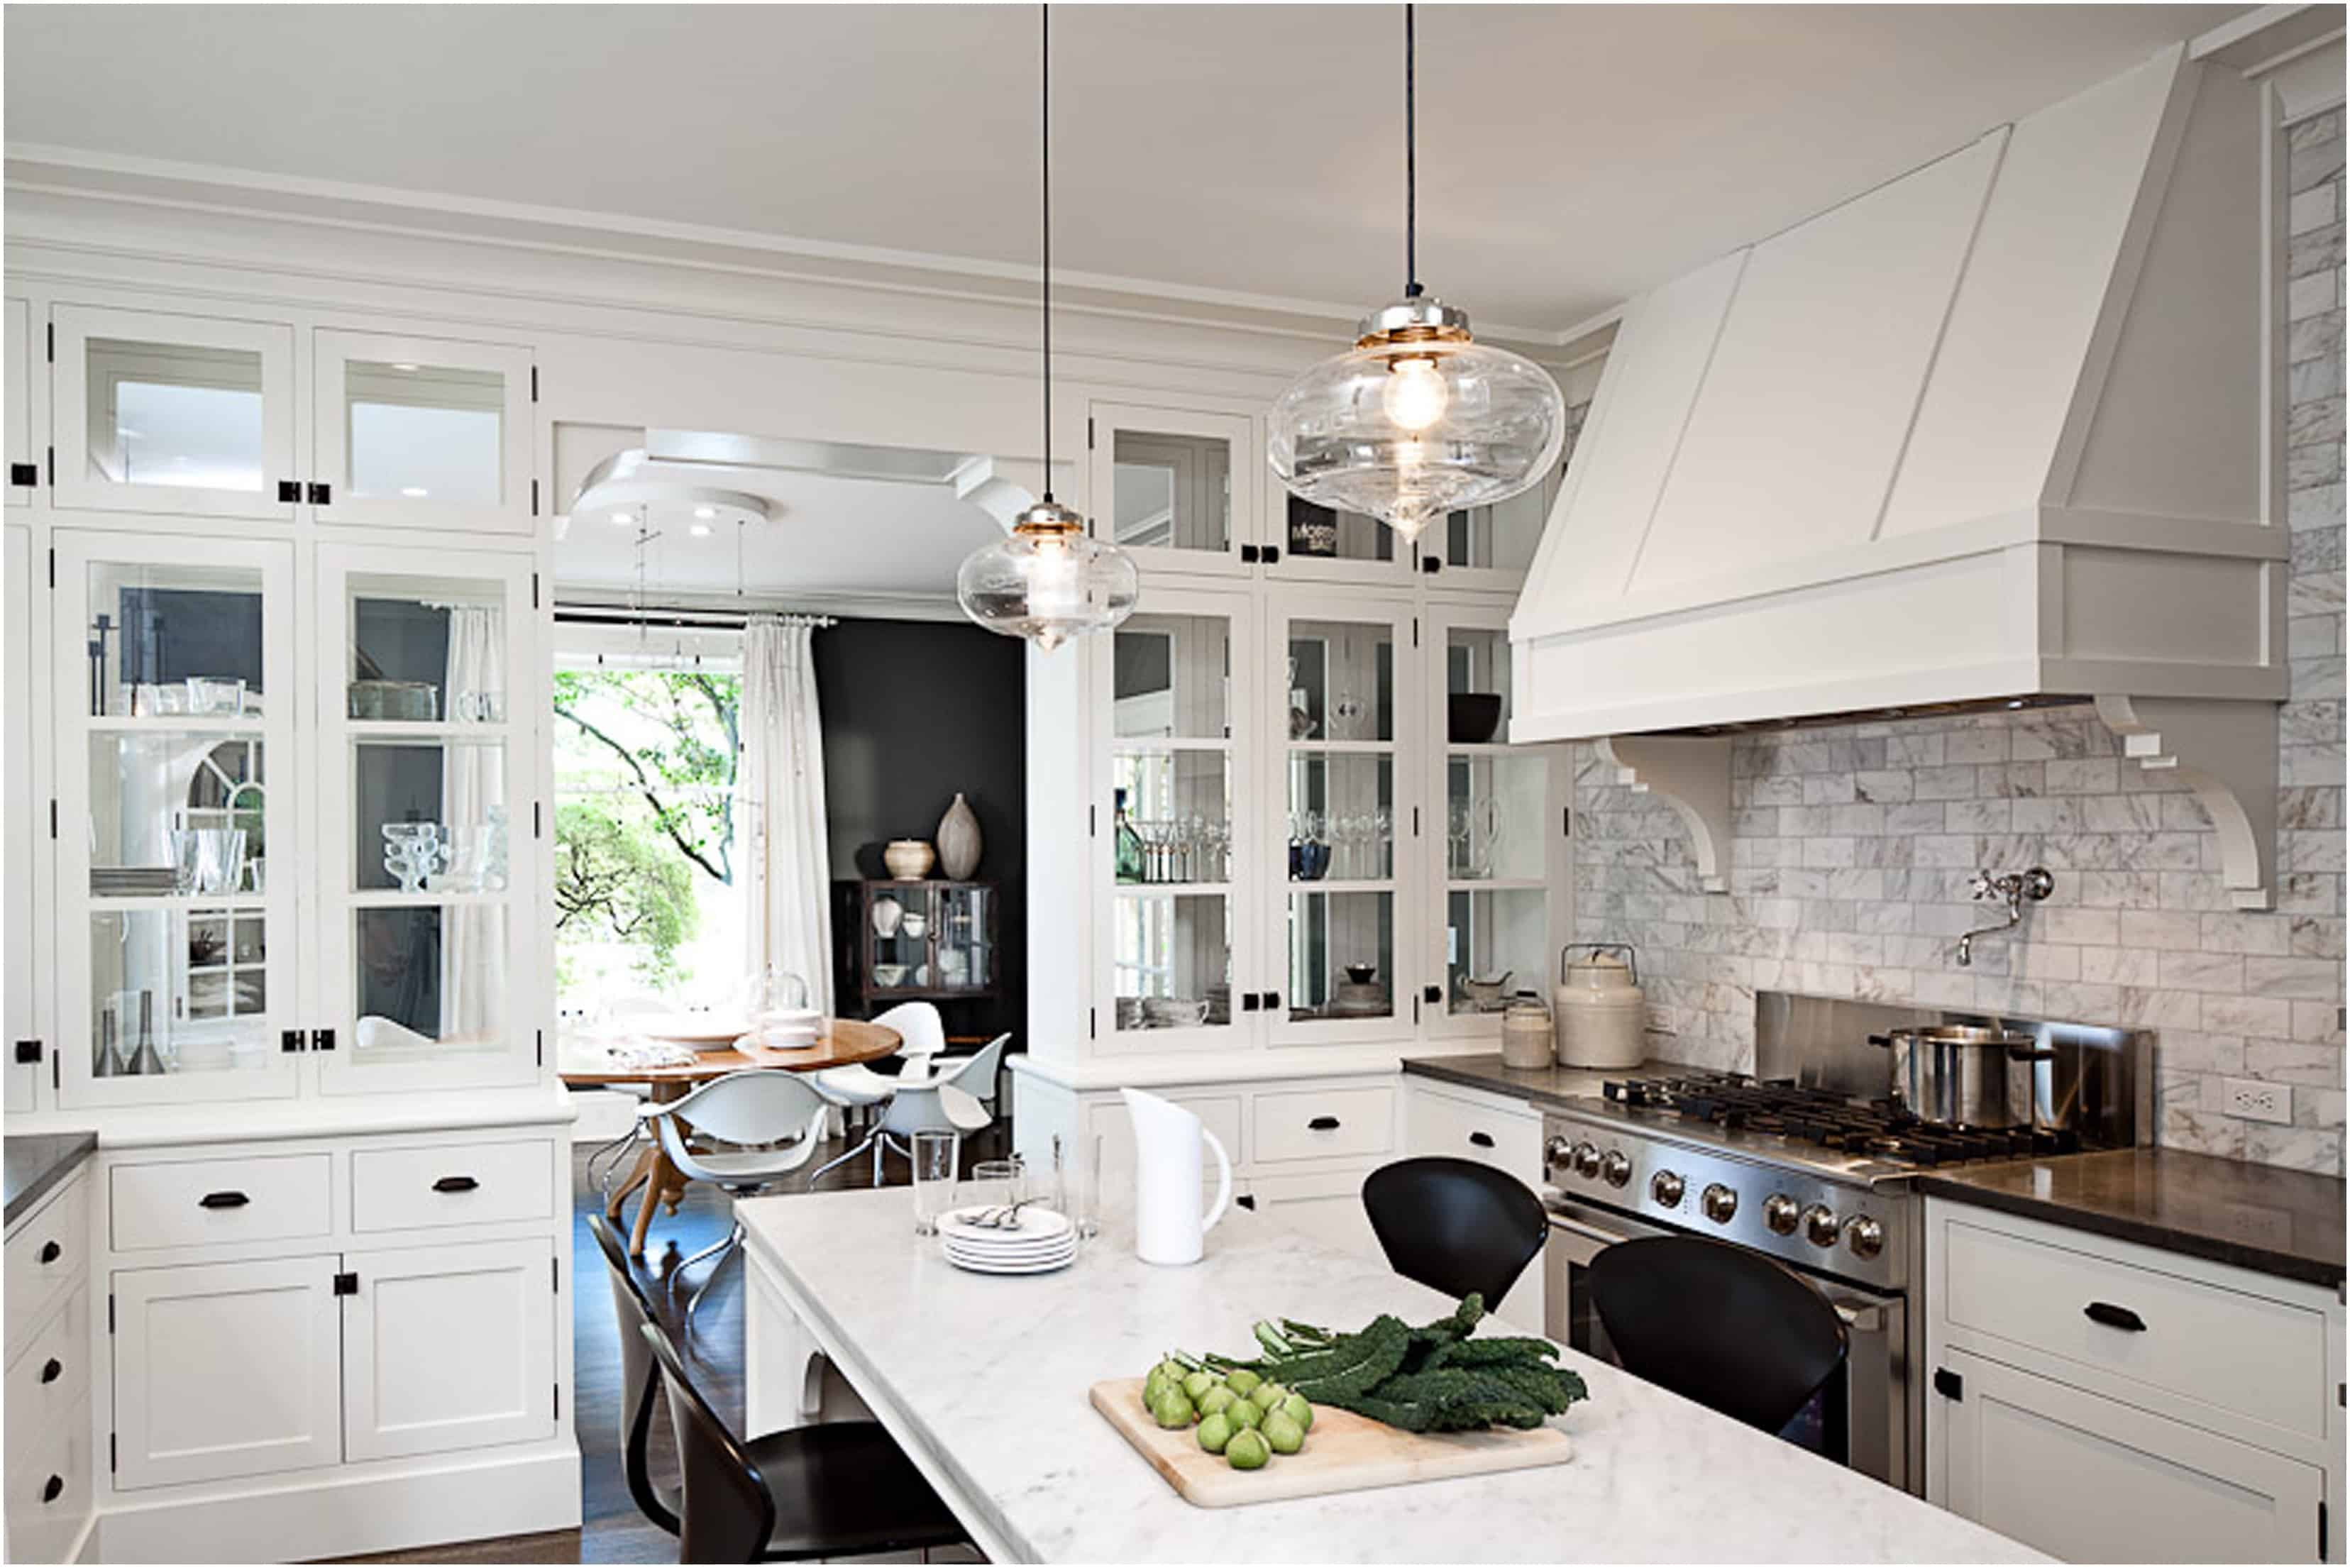 pendant lighing circles 10 Light Fixtures Your Kitchen Needs Today!